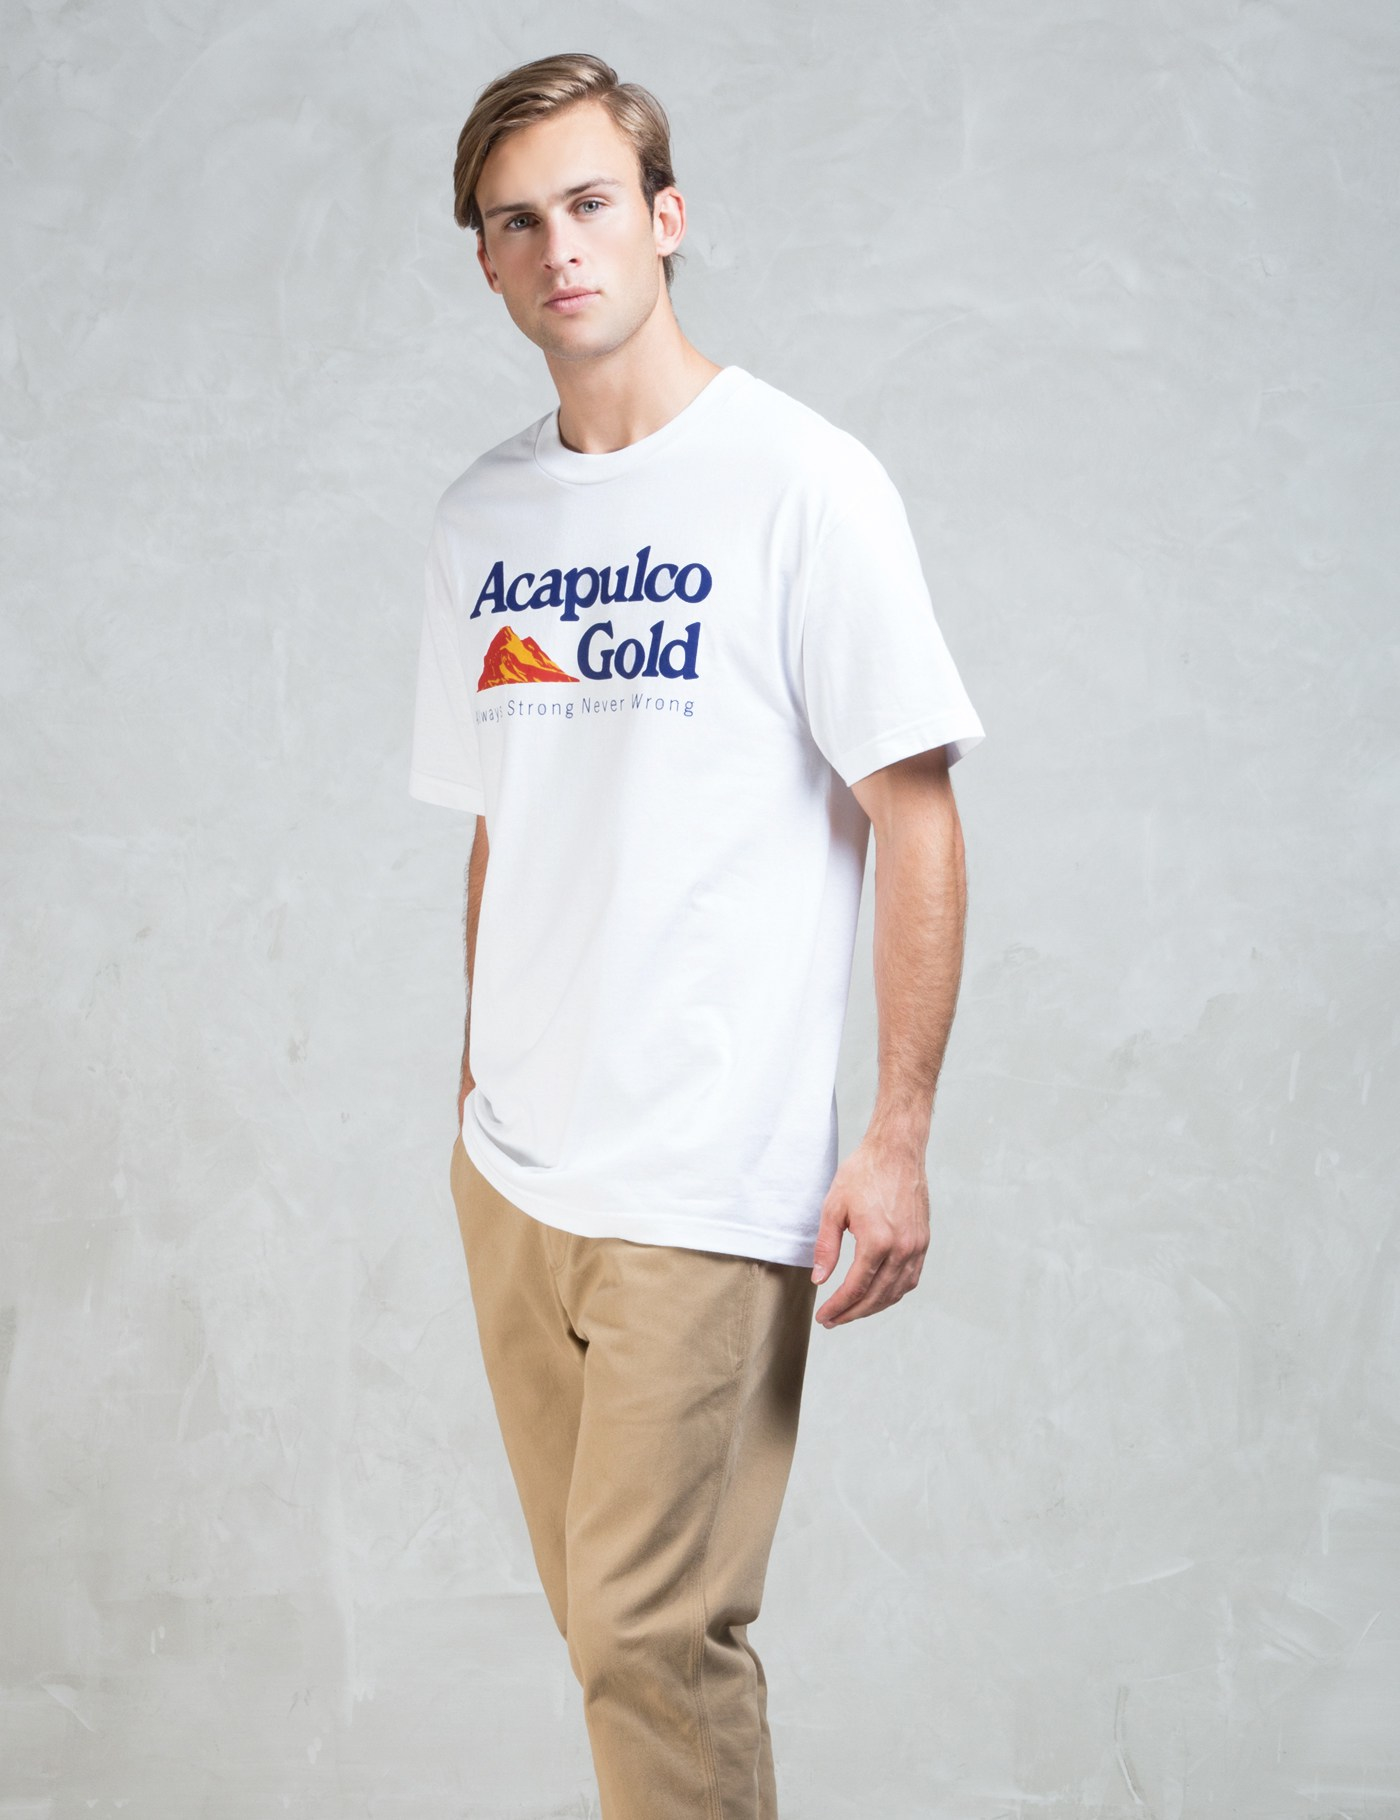 acapulco guys Looking for acapulco gold products find a great selection of men's/ women's acapulco gold products and more at mltd shop for acapulco gold streetwear, t shirts, accessories, bottoms, headwear, footwear.